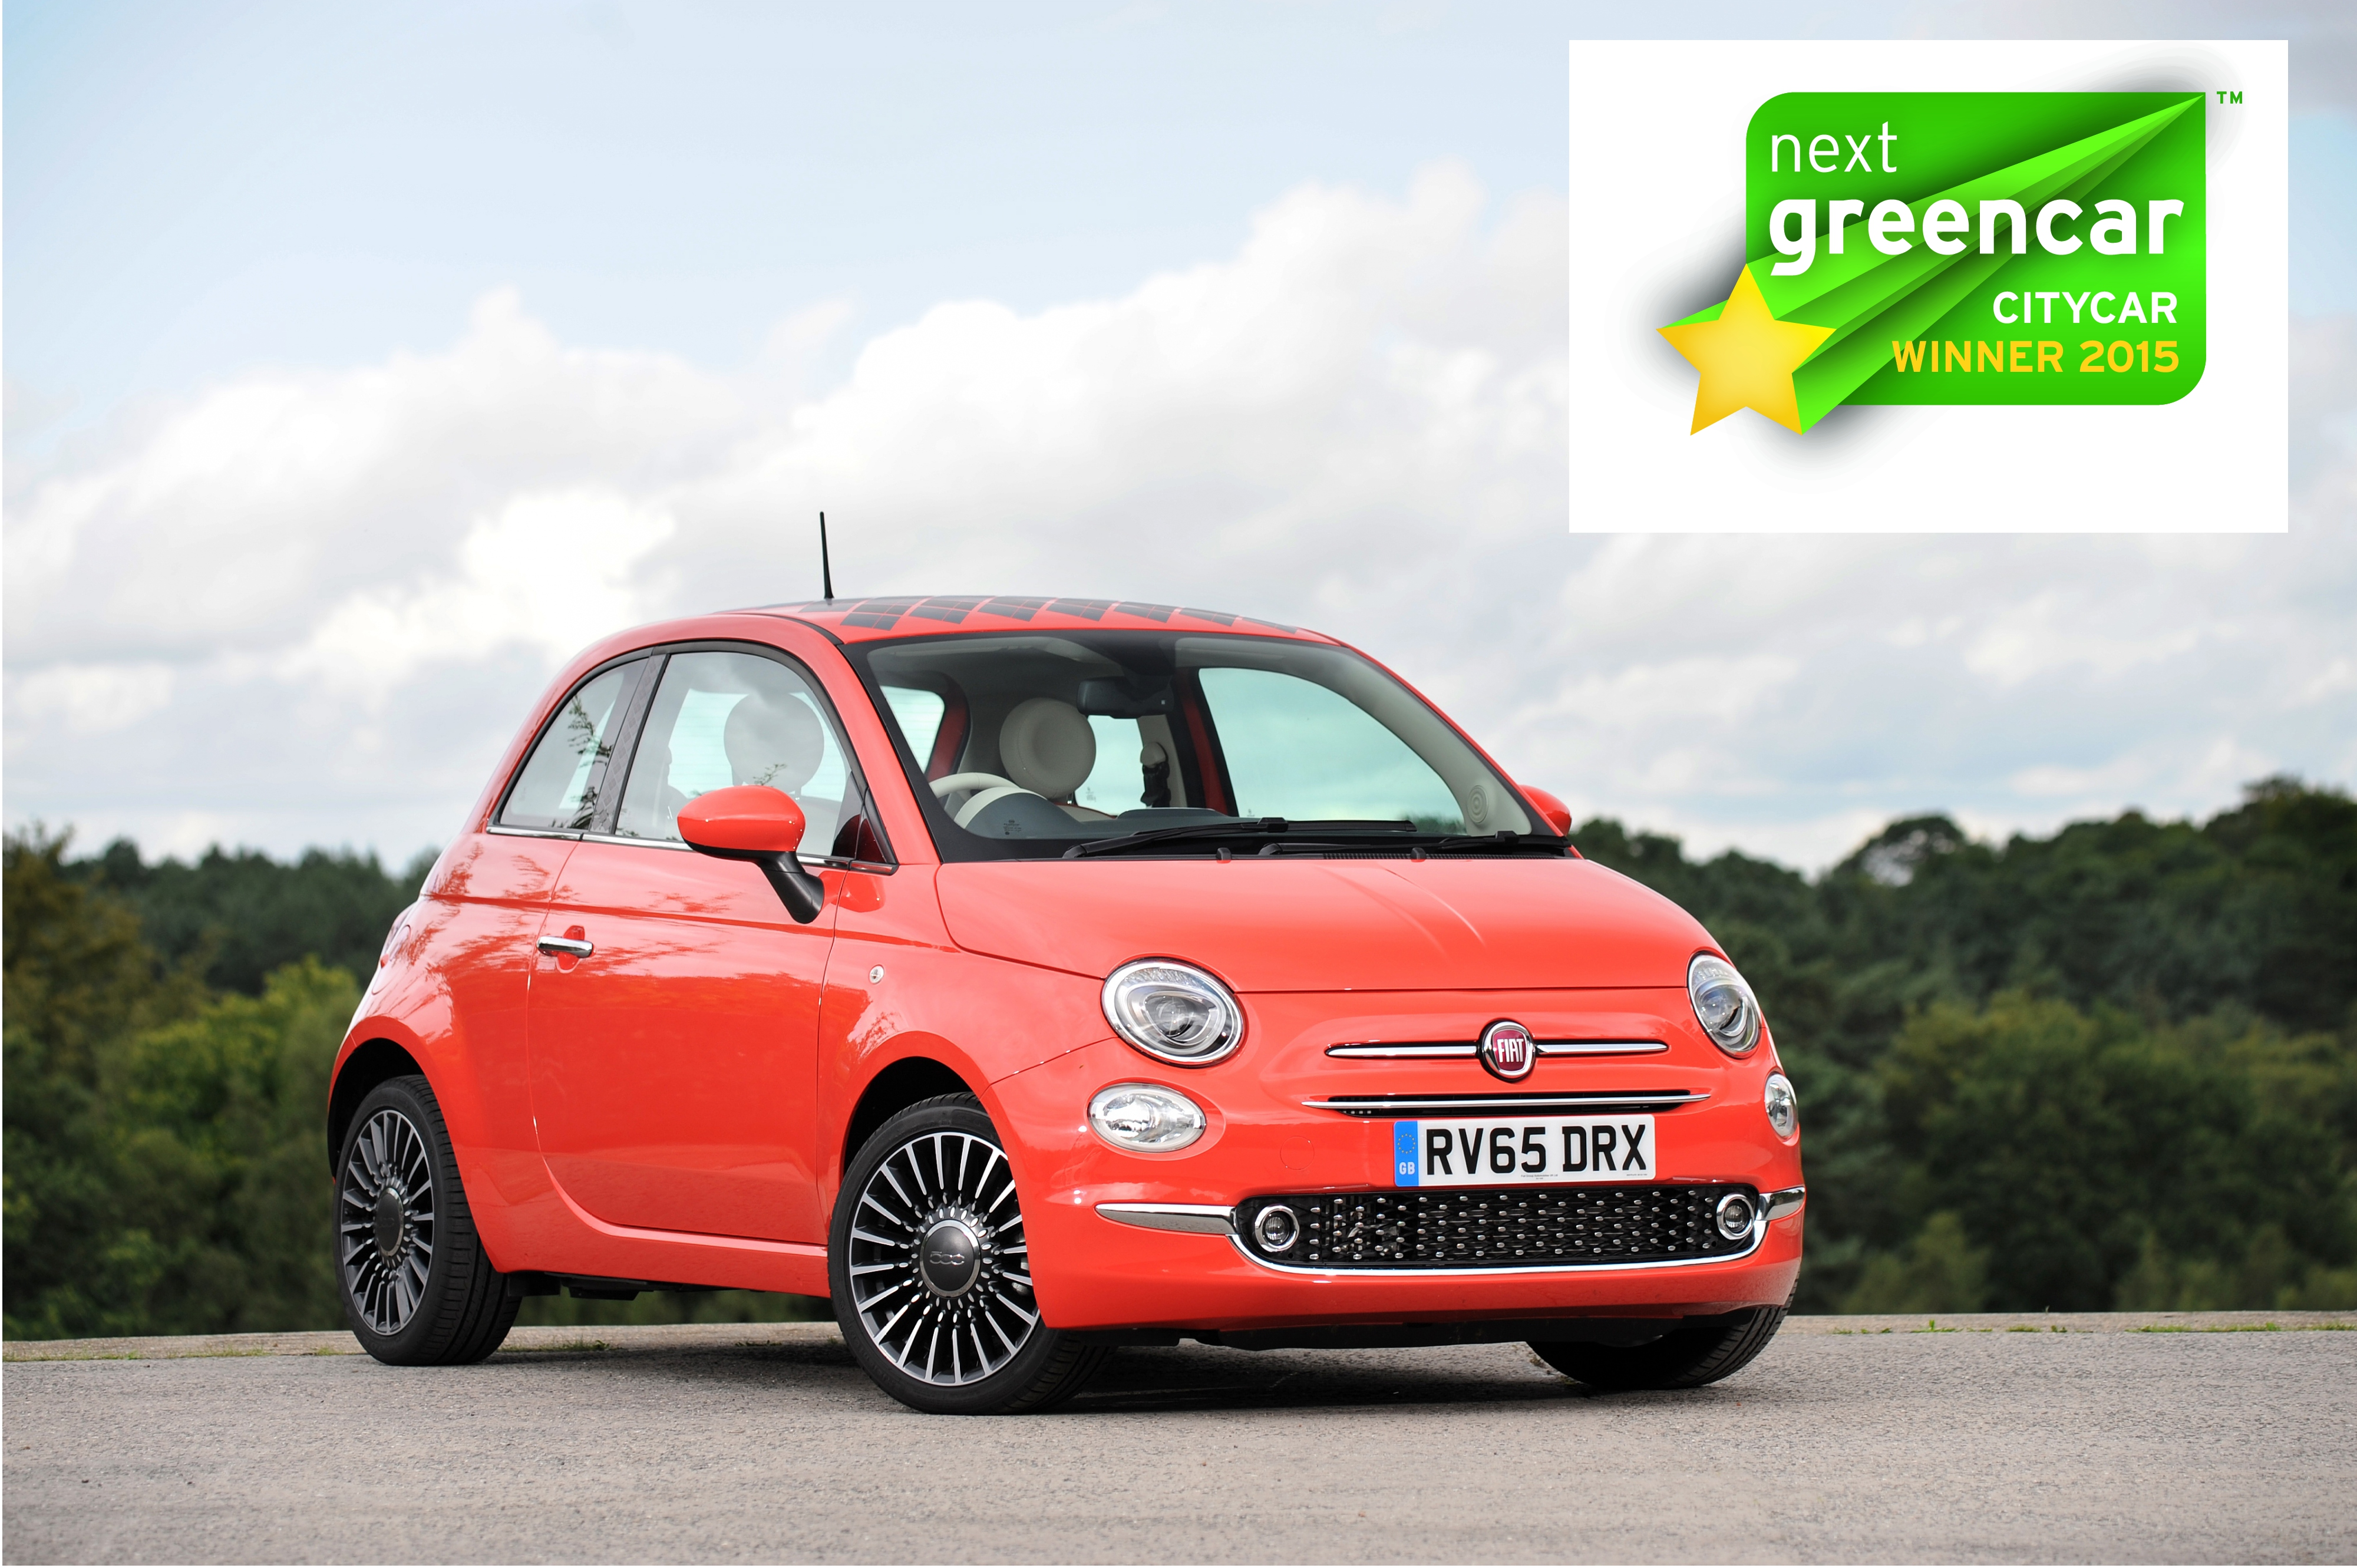 New Fiat 500 Wins City Car Award In Next Green Awards 2015 126 Alternator Wiring Diagram Images